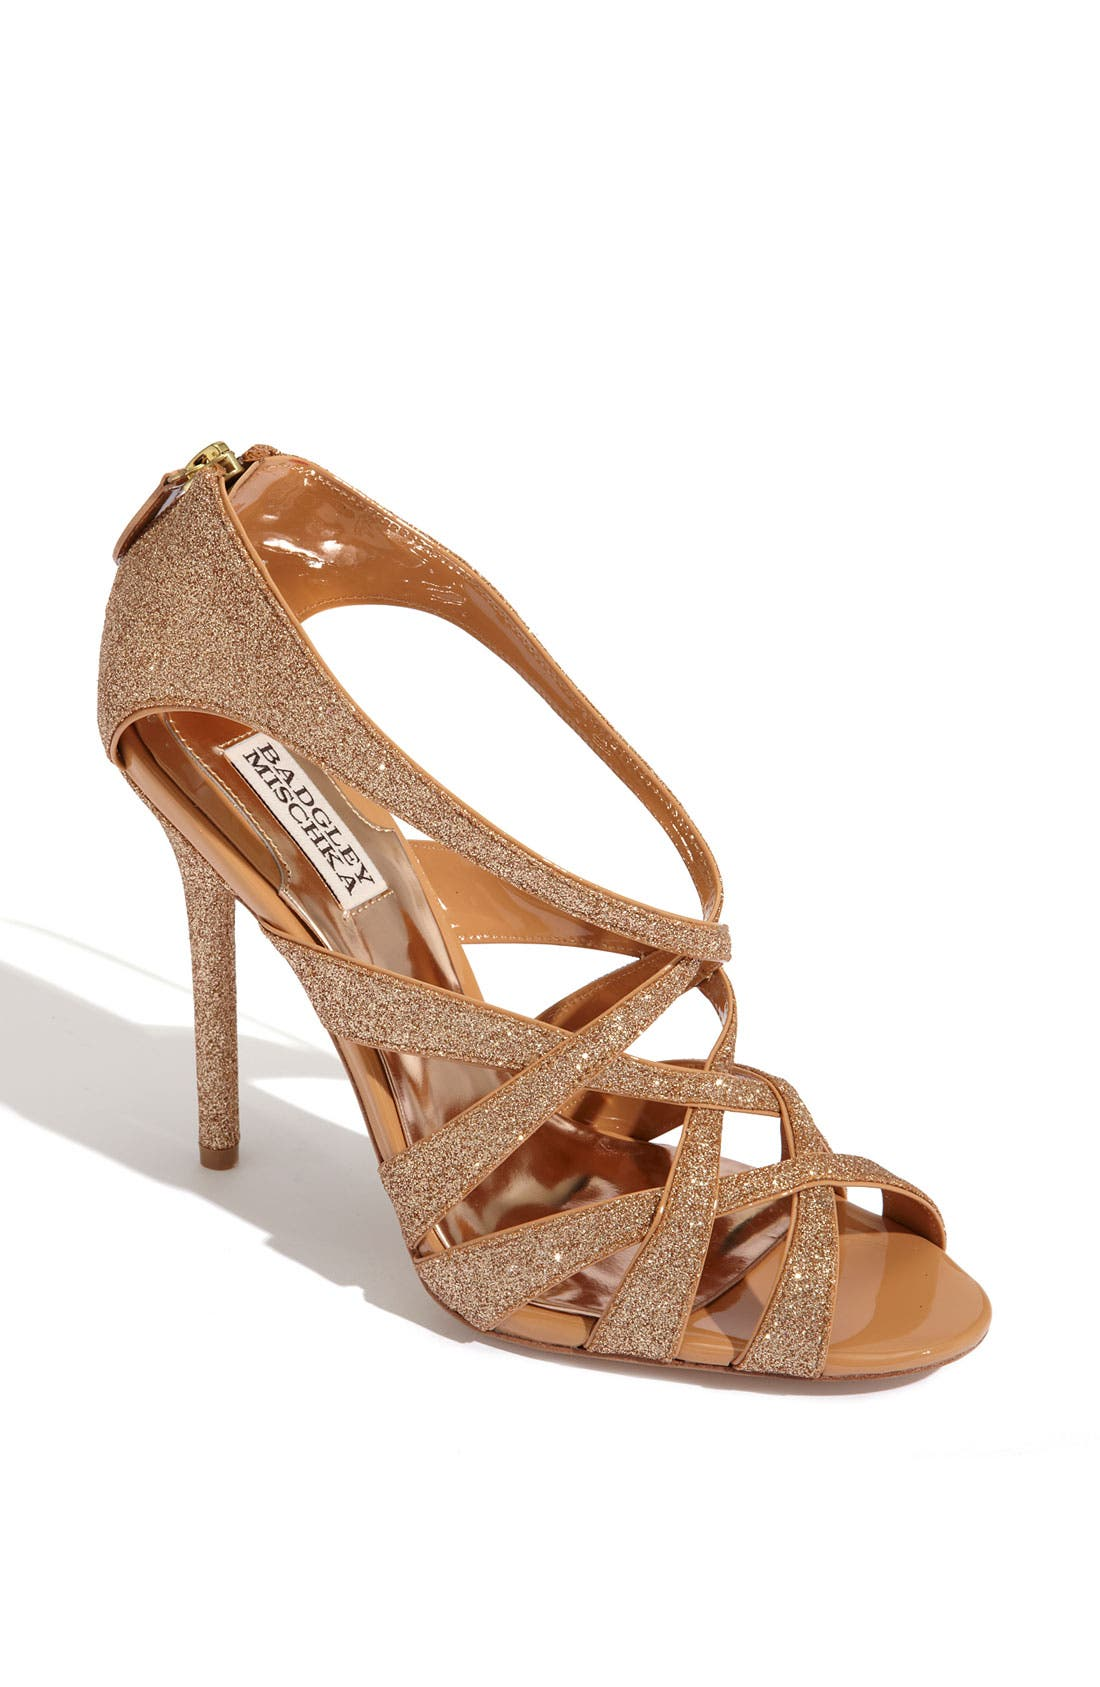 Alternate Image 1 Selected - Badgley Mischka 'Junebug' Sandal